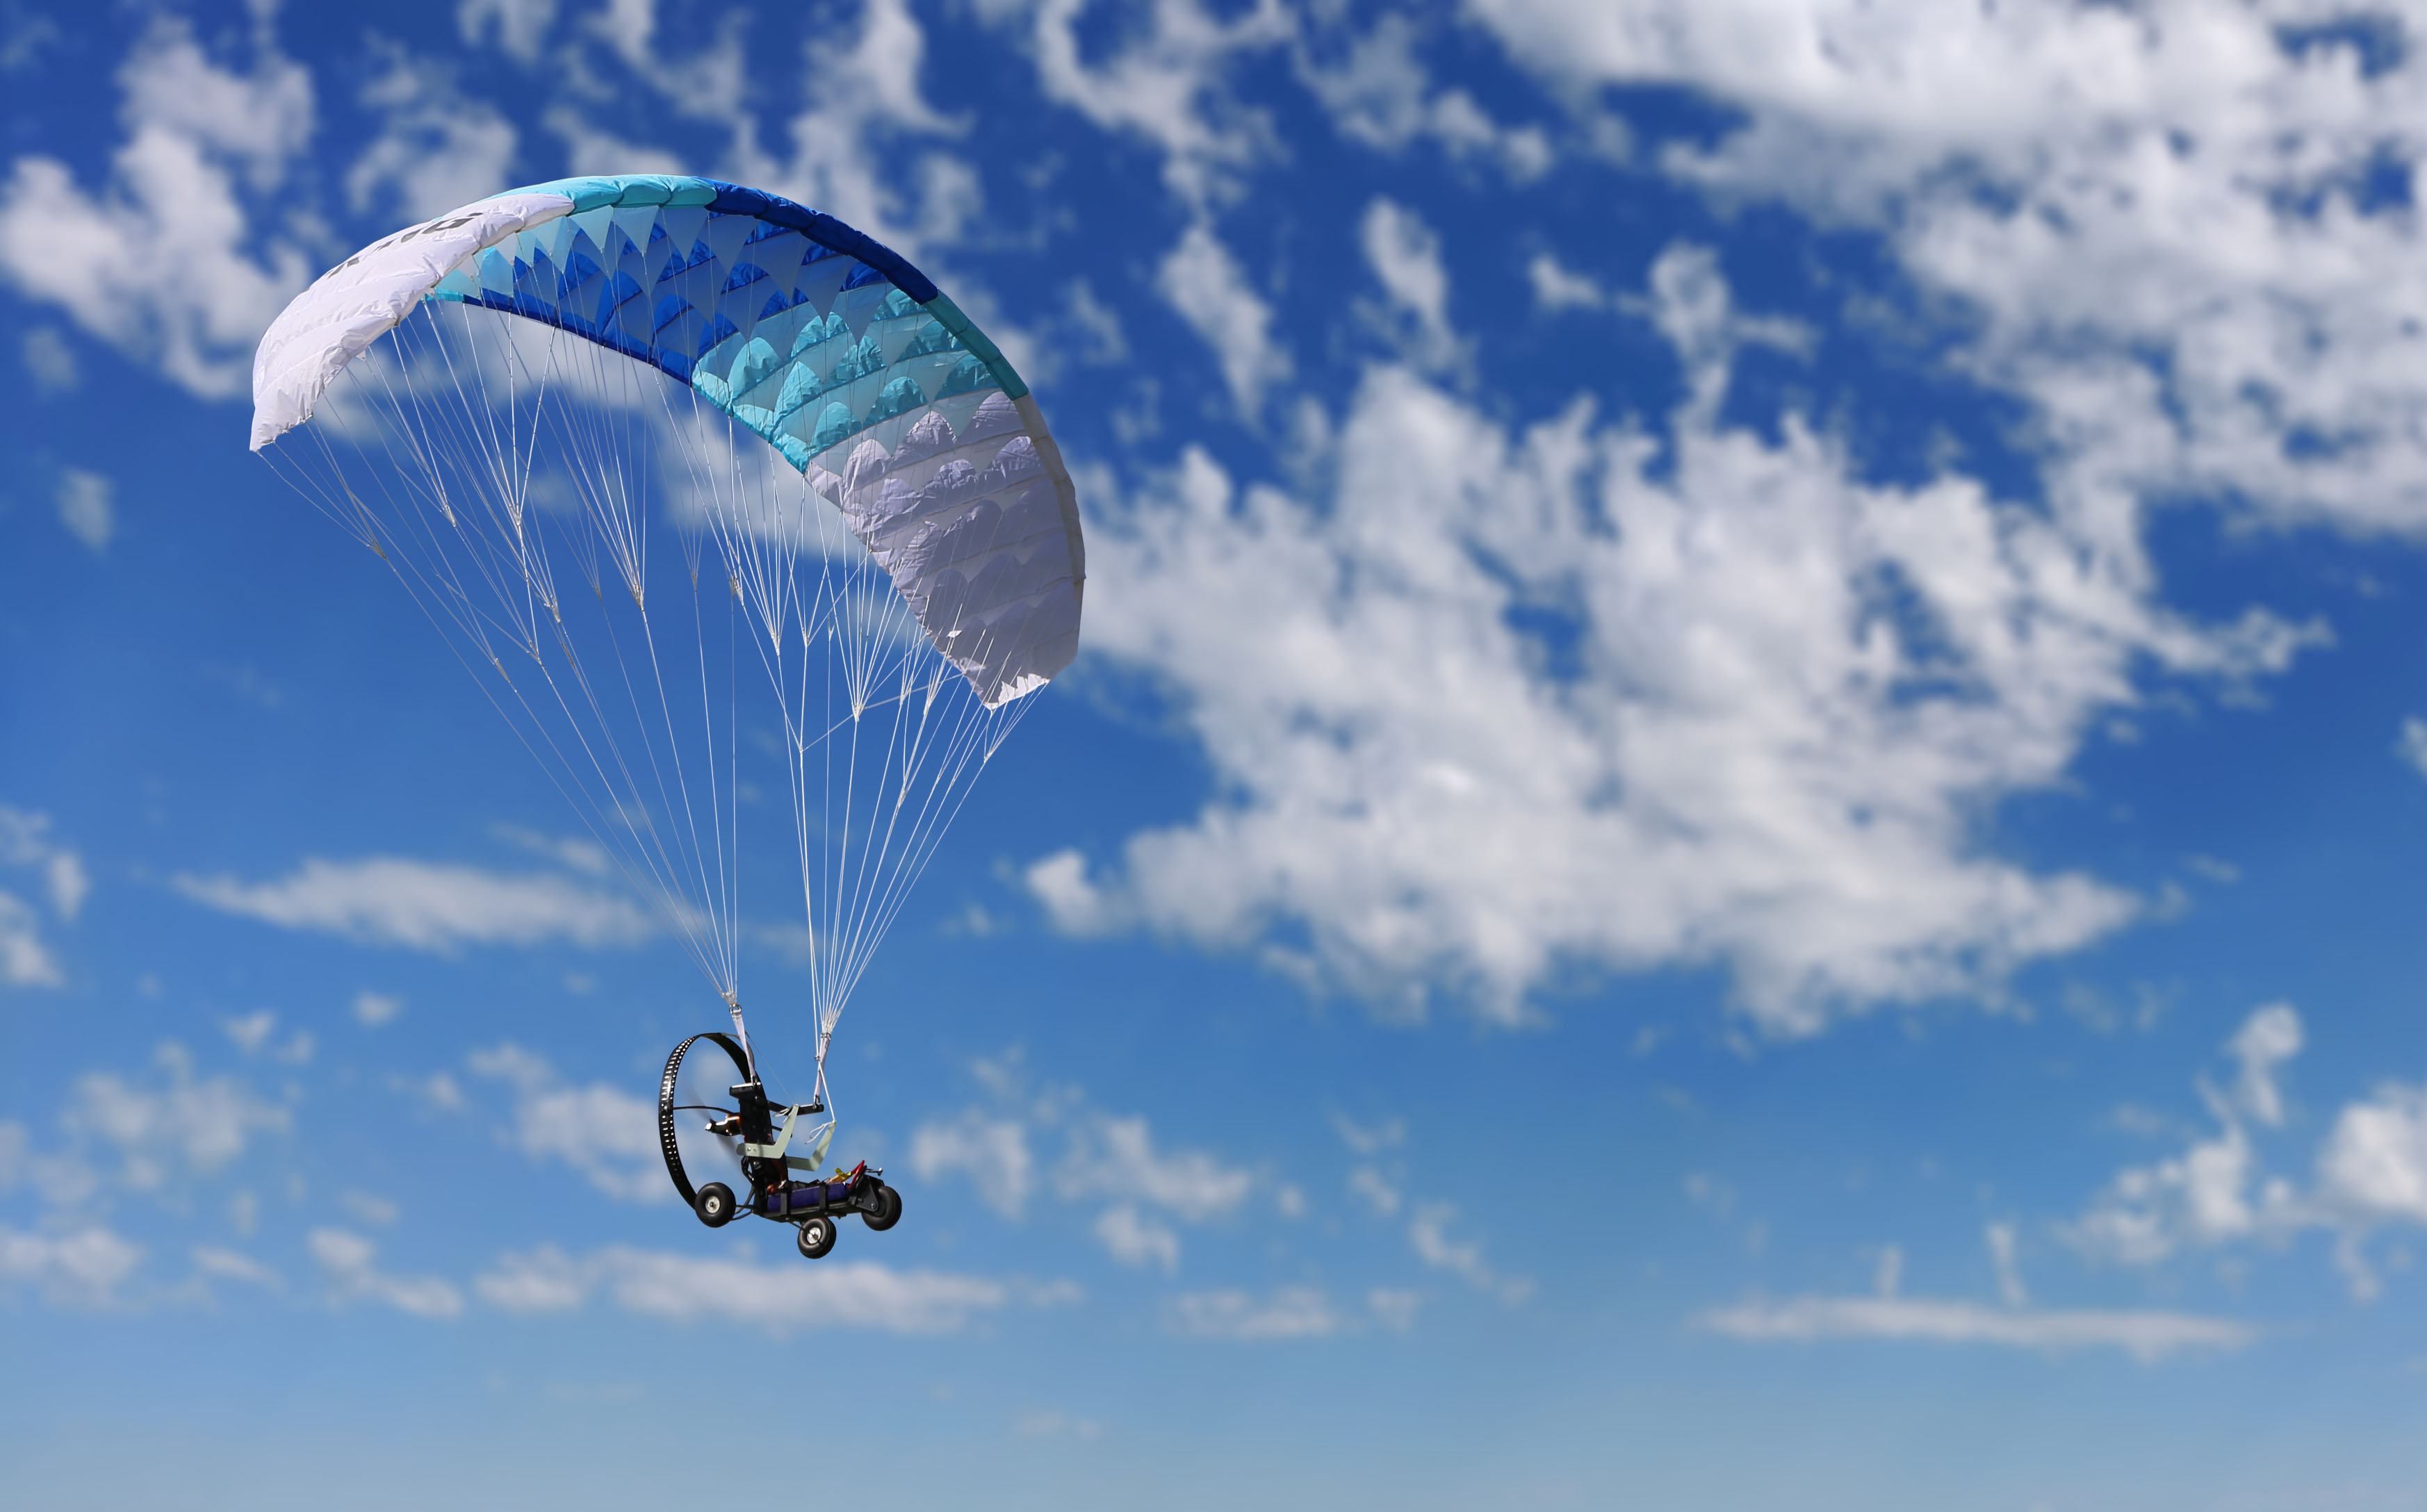 High Performance Paramotor HobbyKing